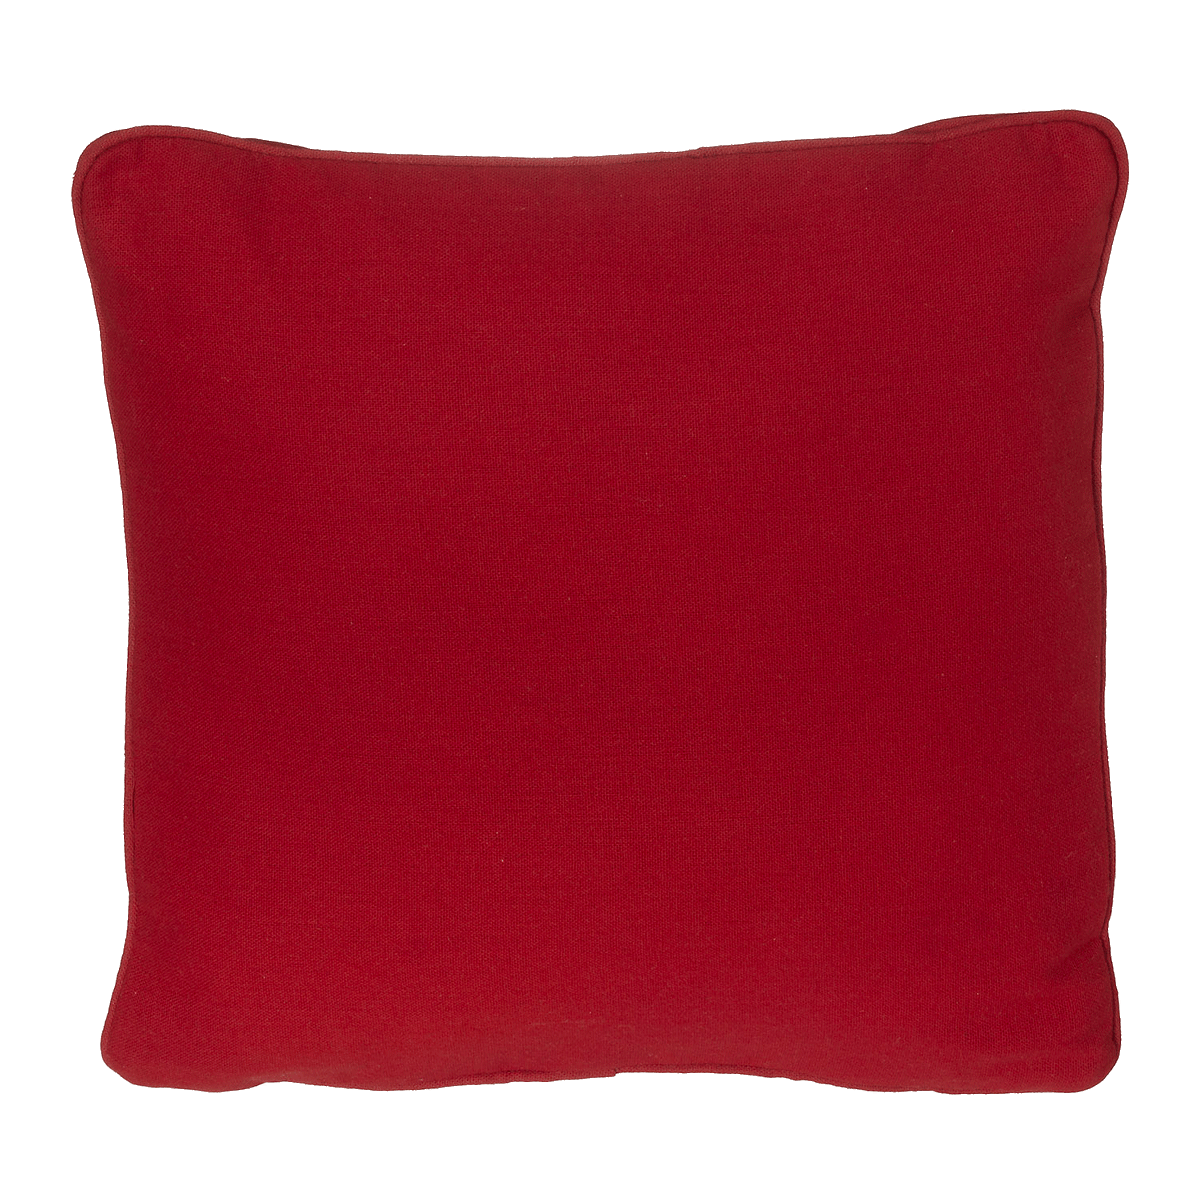 EB Embroider Red Linen Pillow 14 X 14 Cover and Foam Insert